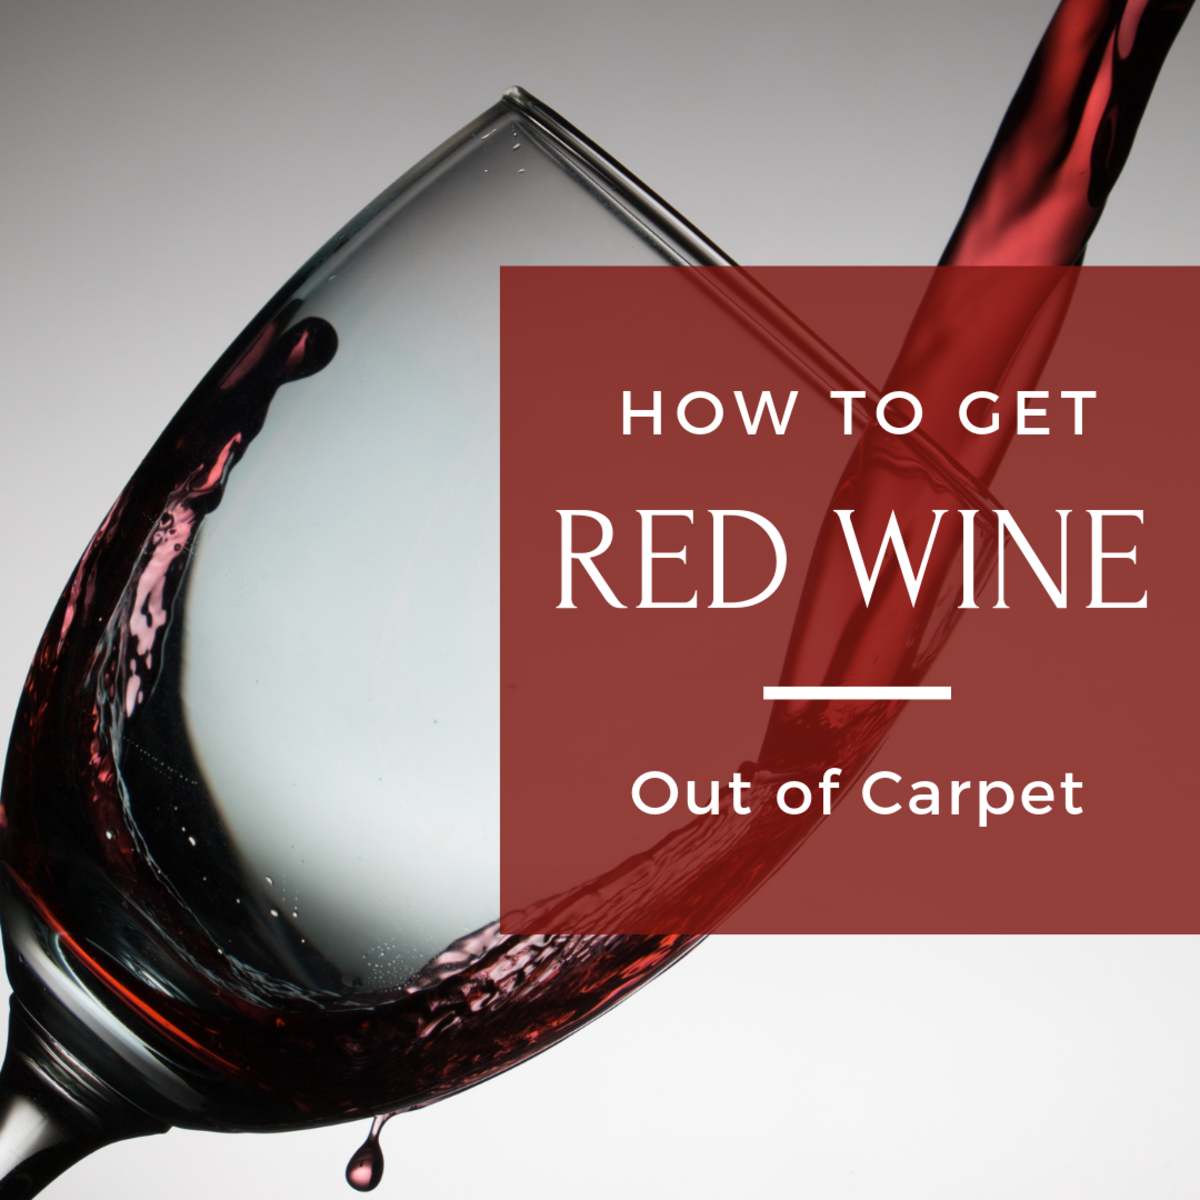 How to get red wine out of carpet.